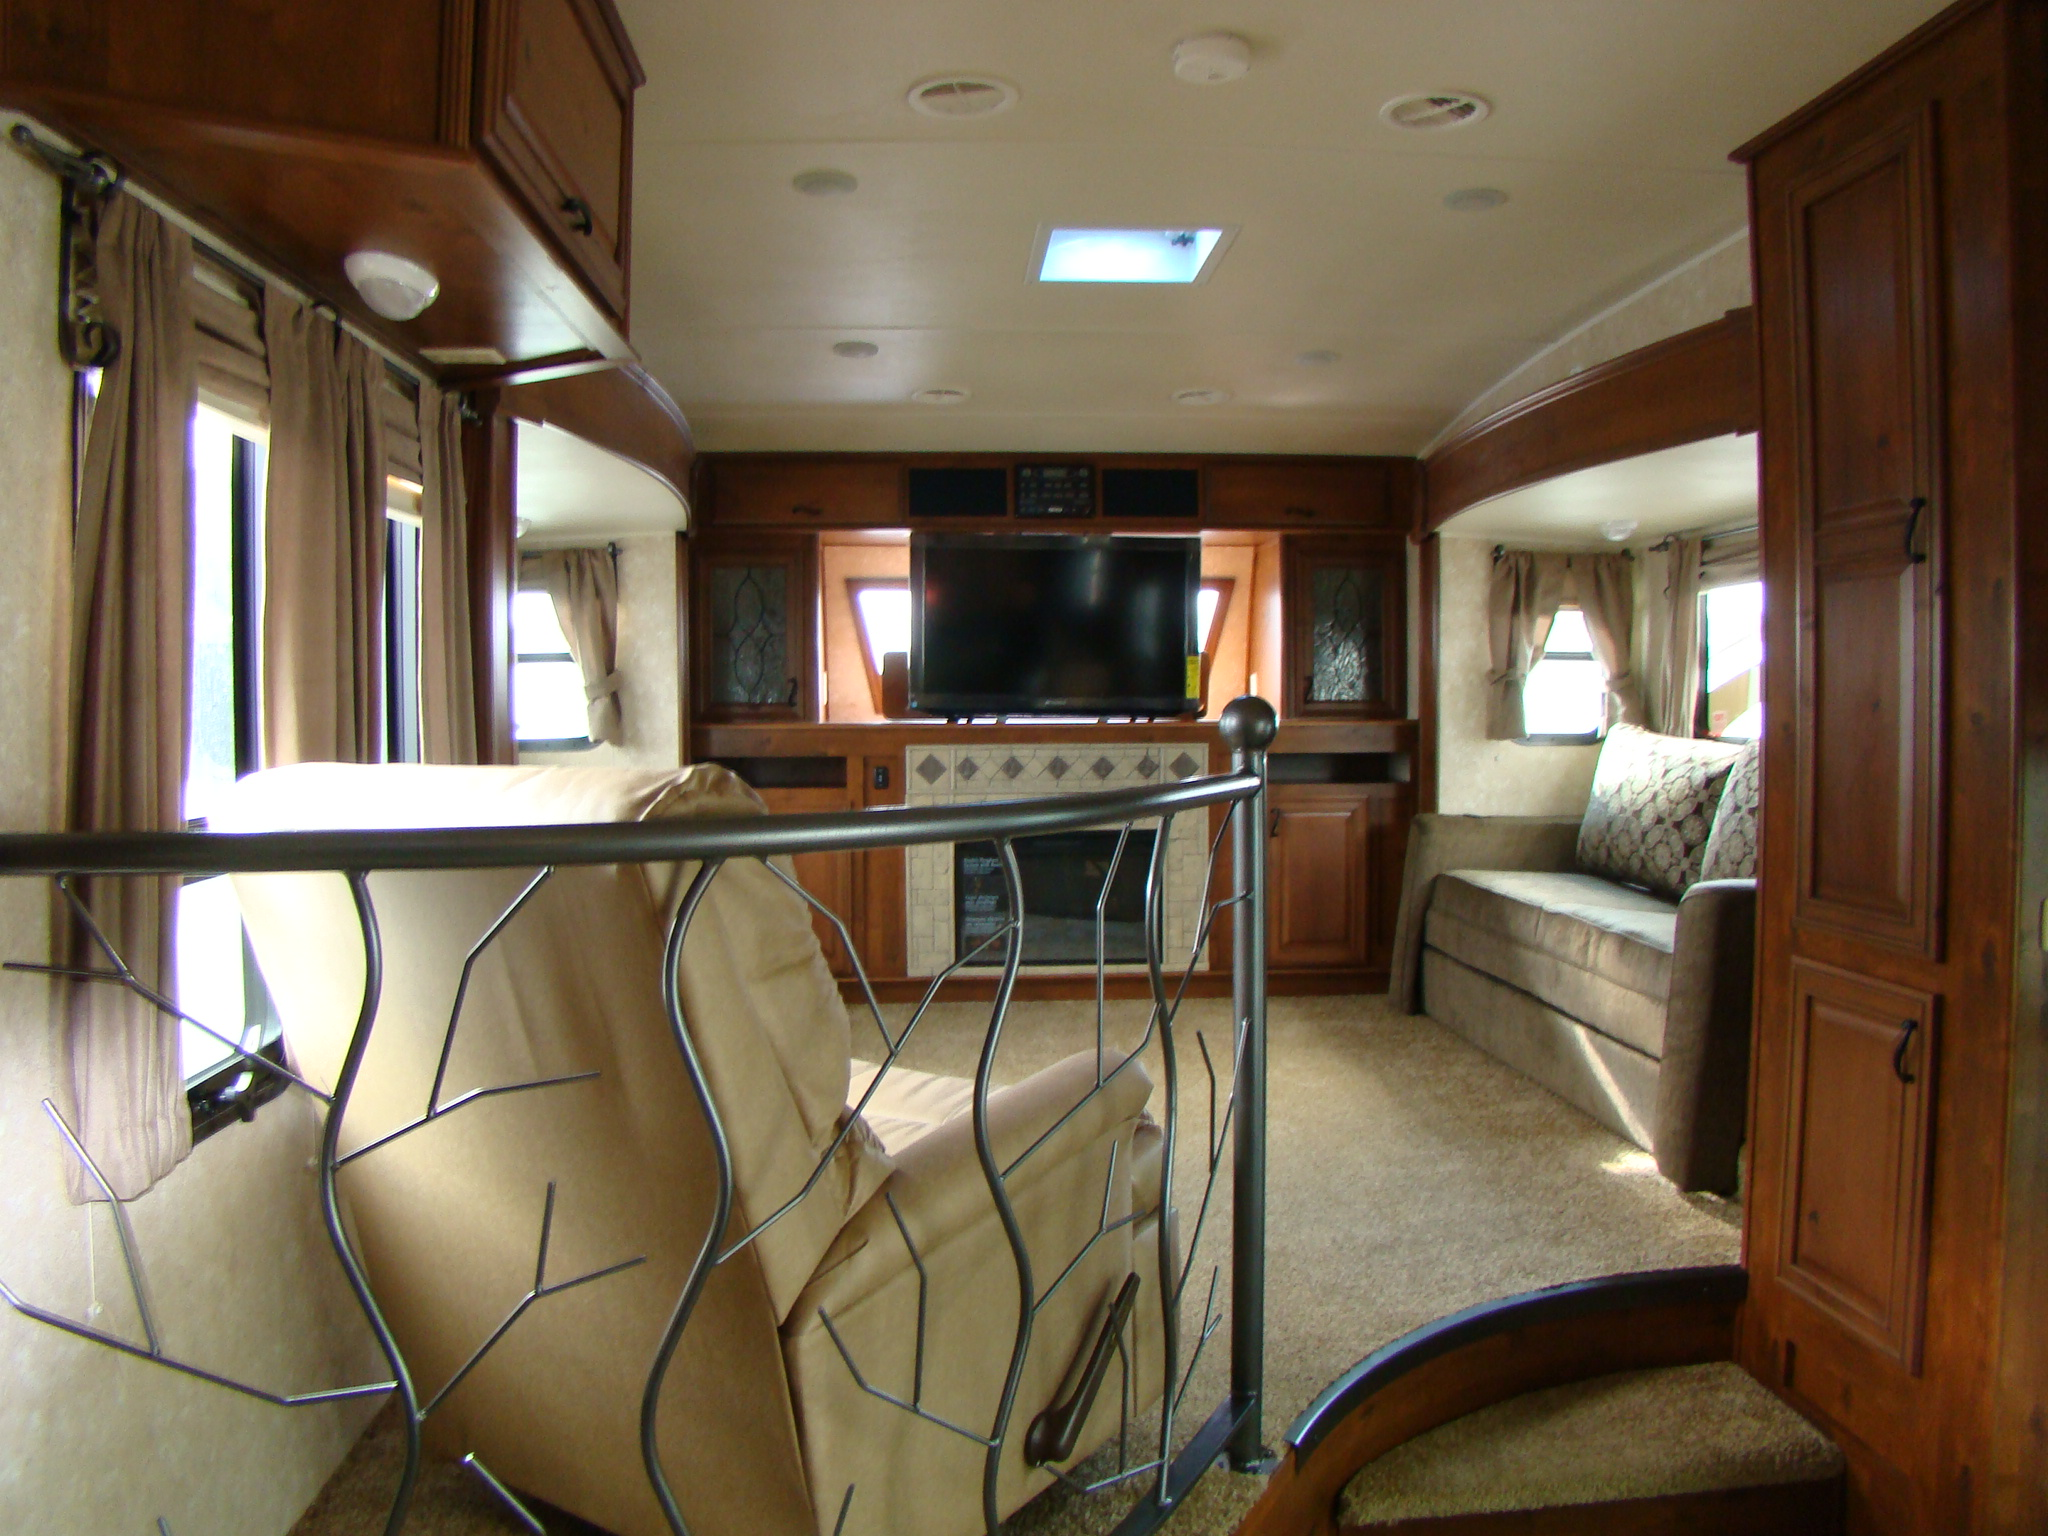 Rv Dealers Pennsylvania, Lerch RV, Rv Dealers, Rv Dealers York PA, Rv. Just  Like Home, Spacious Front Living Room.